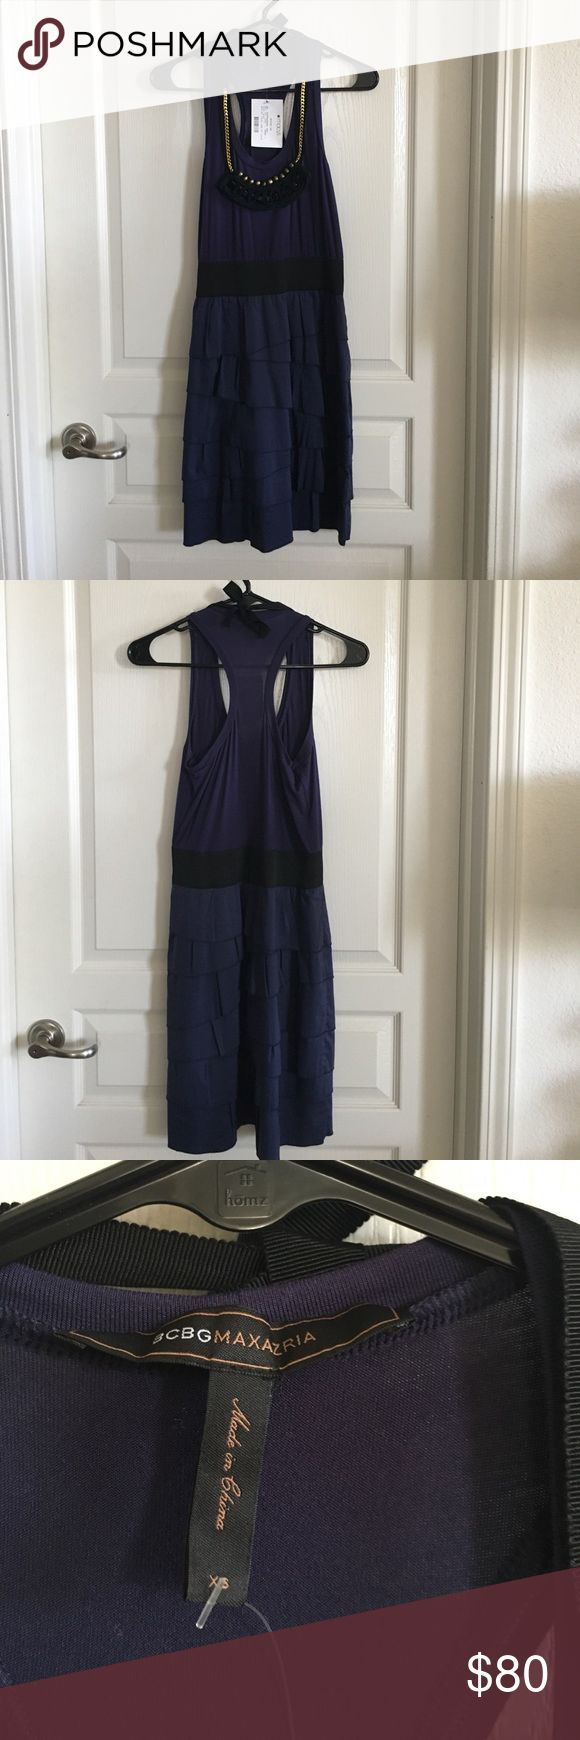 """NWT BCBG Tiered Ruffle Dress with Necklace Sz XS Brand new and never worn. Tiered Ruffle dress with elastic waistband. Top is a racer back tank. Comes with an attached necklace. Color is deep blue and black. Lined. Cotton/spandex/rayon. Length is 36"""". Waist is 12"""" unstretched. One piece of the necklace is a little bent and not perfectly round (see last pic). However, it is only noticeable when you look closely. Also, necklace is sewn on and left side has come off. Should be easy fix to…"""